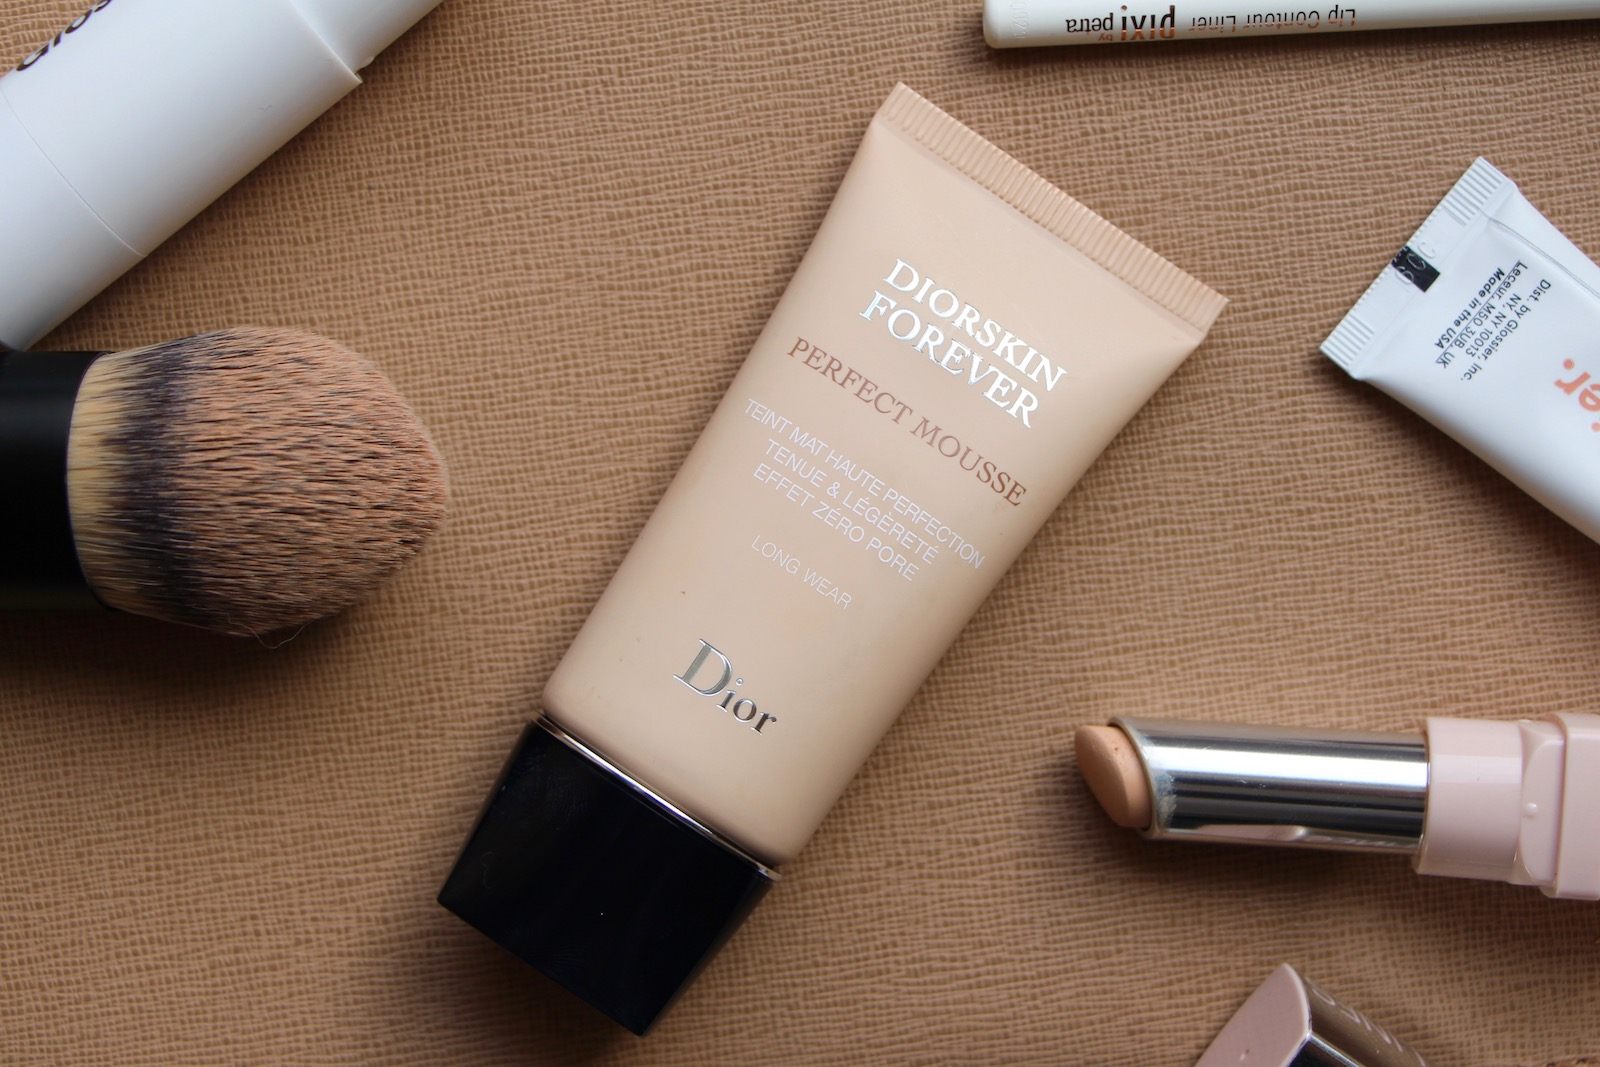 dior perfect mousse